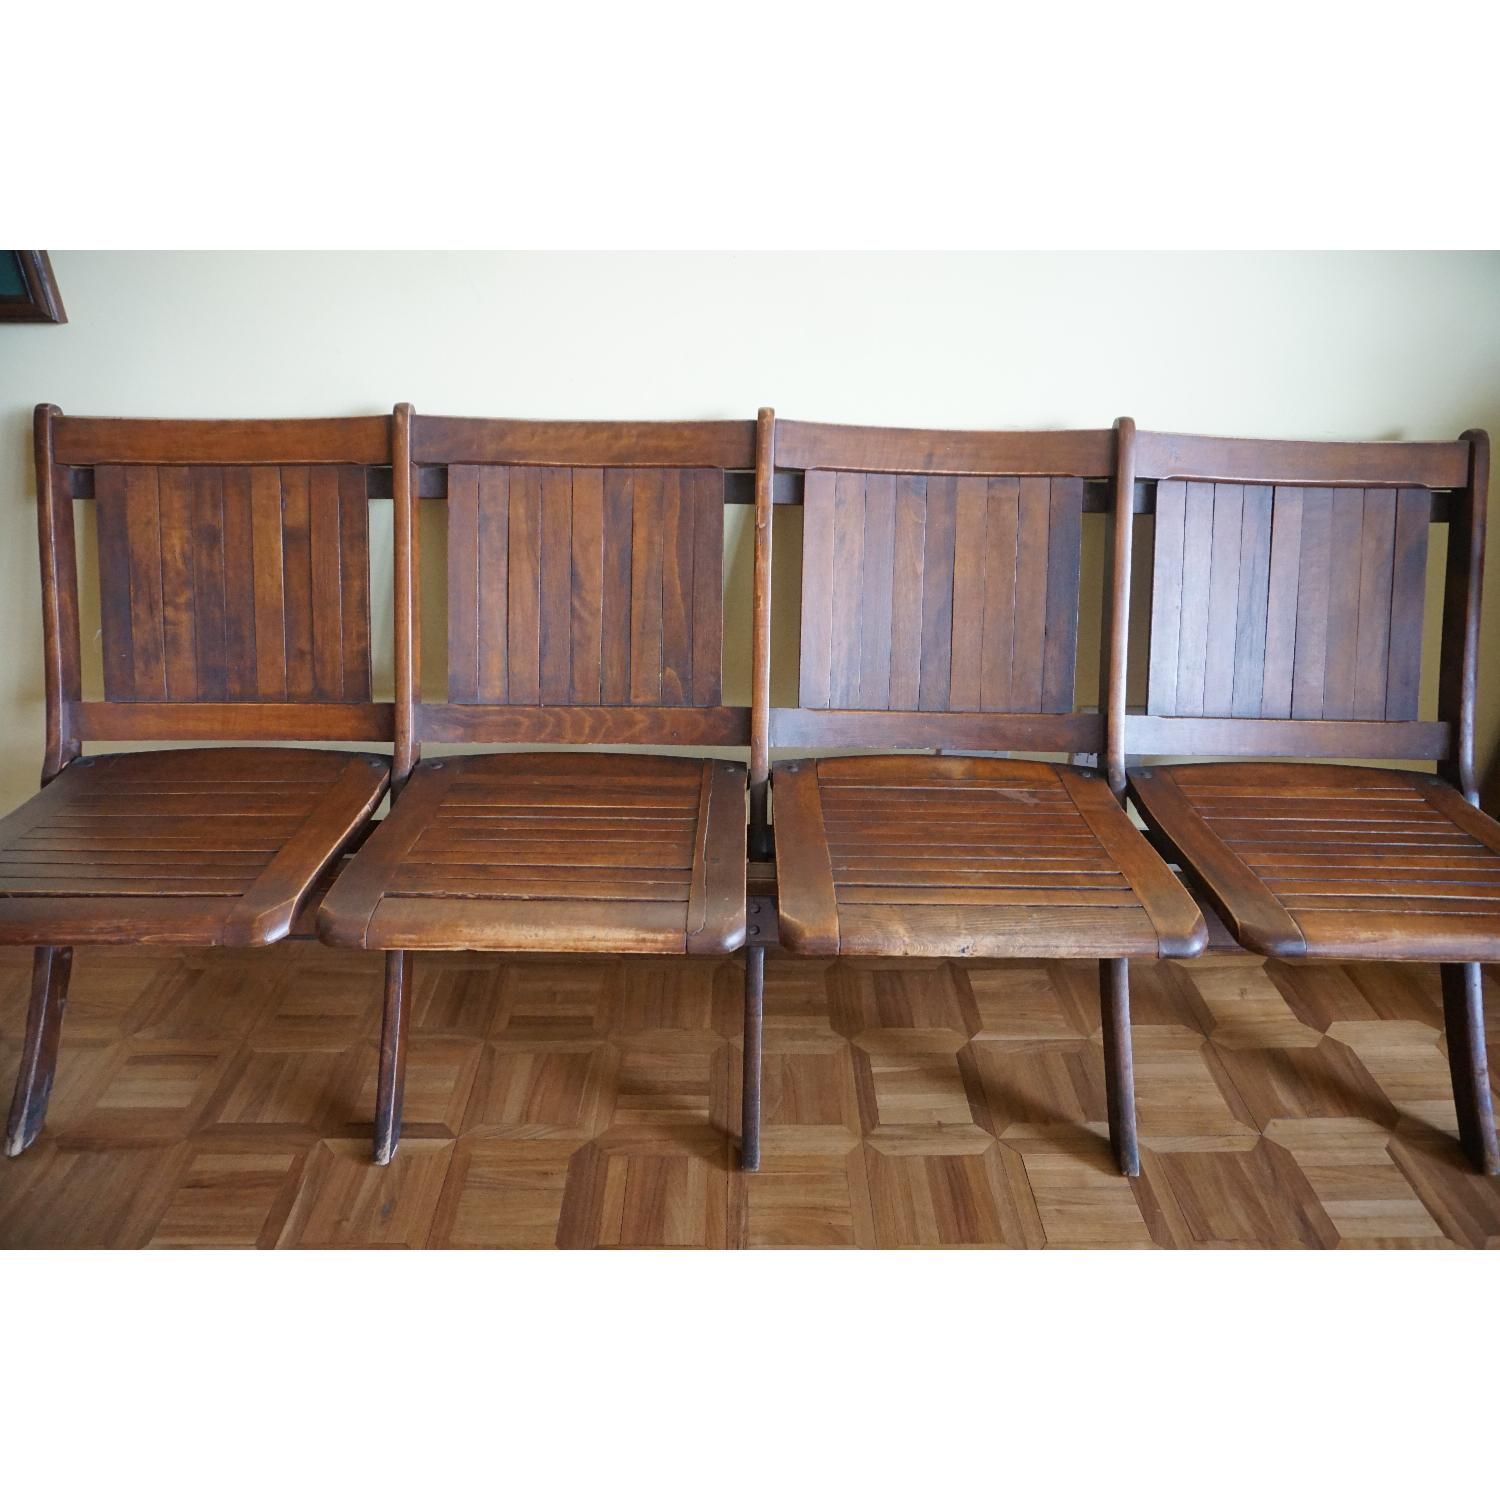 Vintage Harlem Movie Theater Wooden Bench Seats - image-1